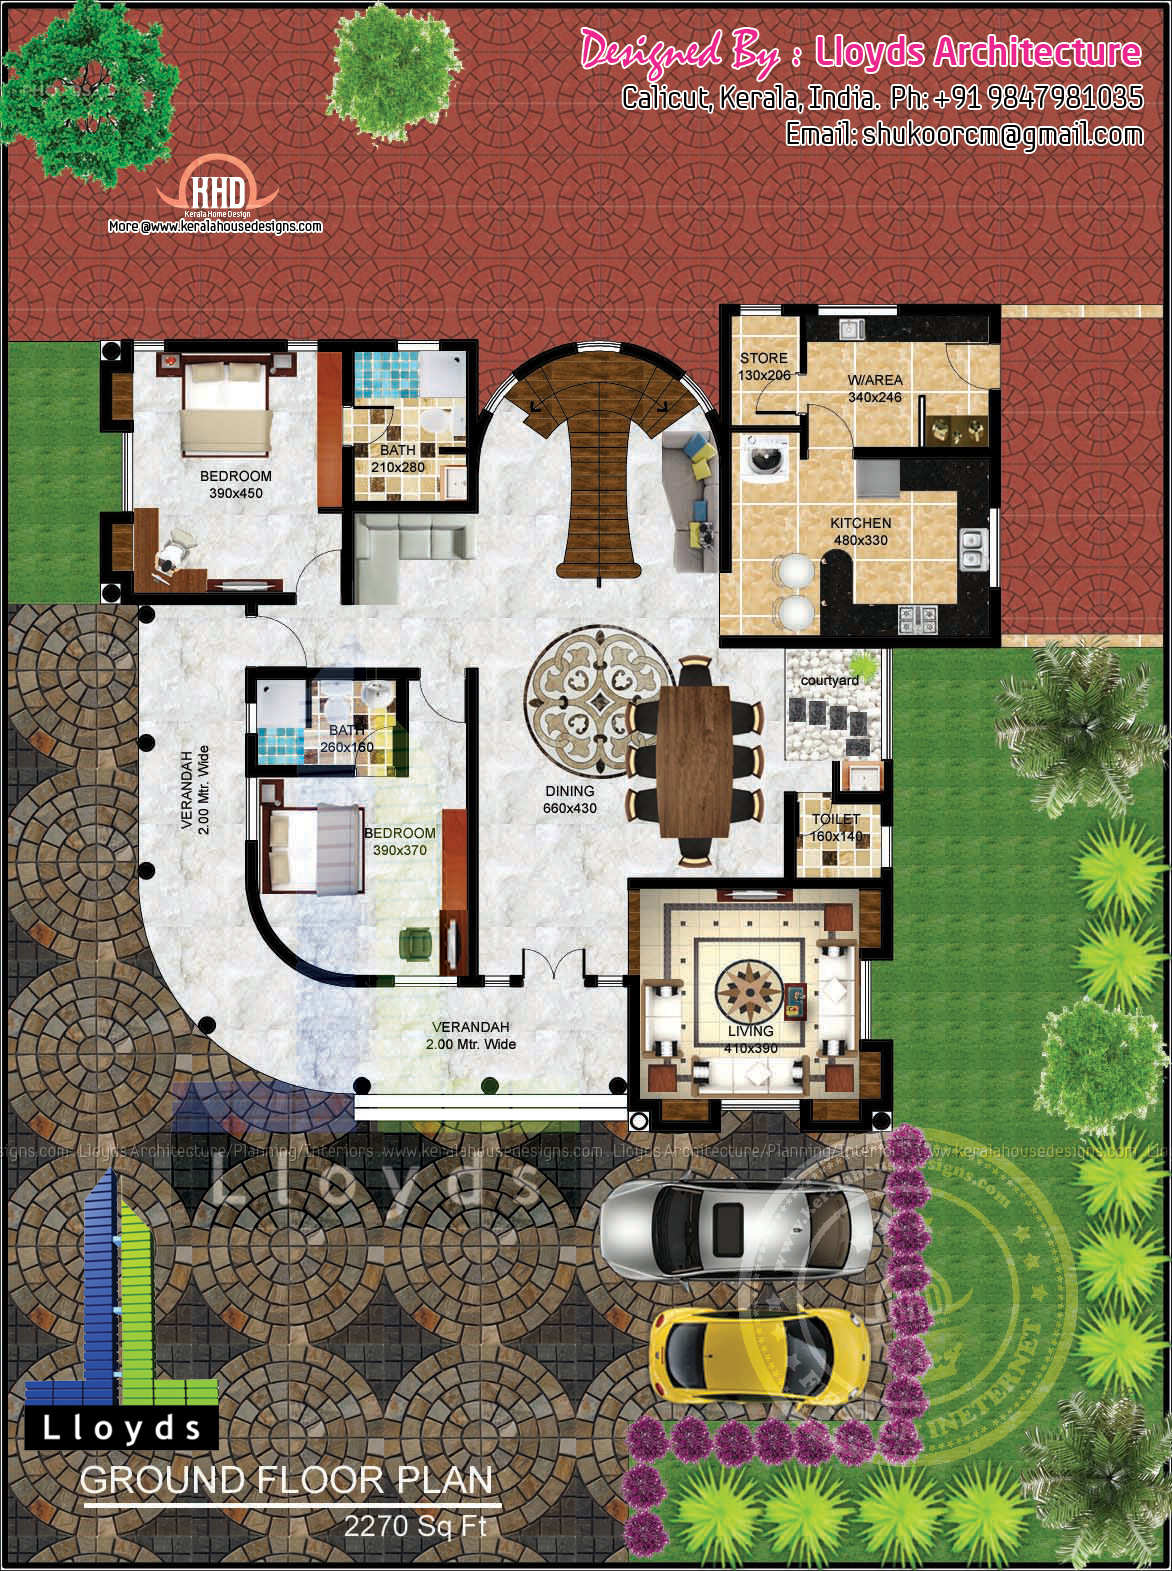 5 bedroom luxurious bungalow floor plan and 3d view home for 1st floor house plan india